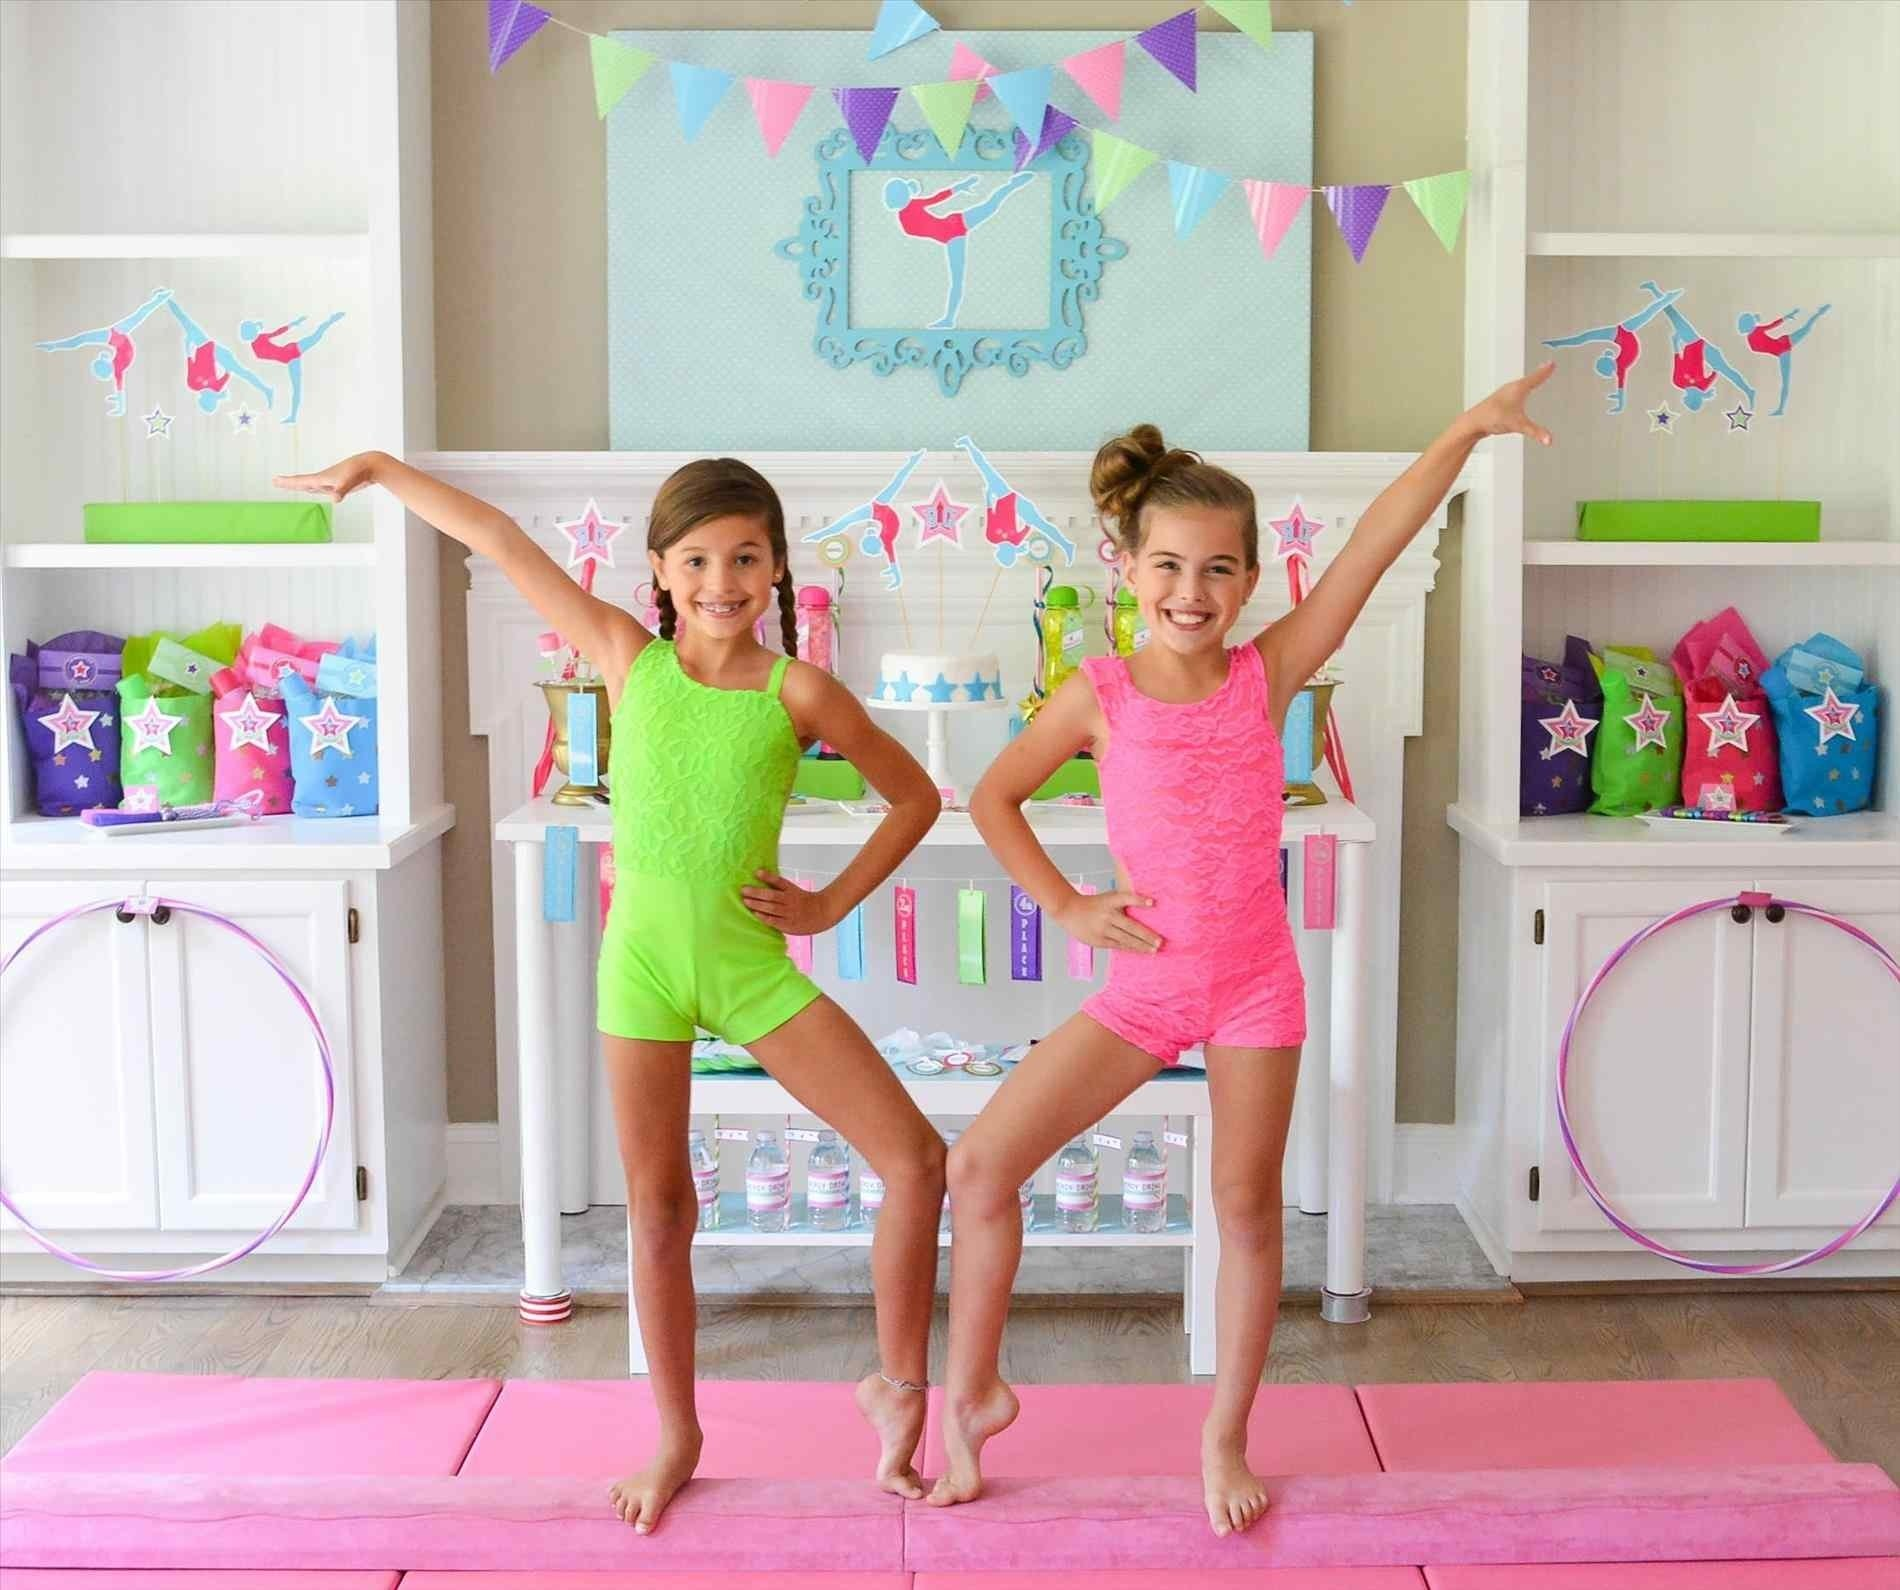 10 Unique Birthday Party Ideas For 11 Year Old Girls Nobby Bedroom At Spa